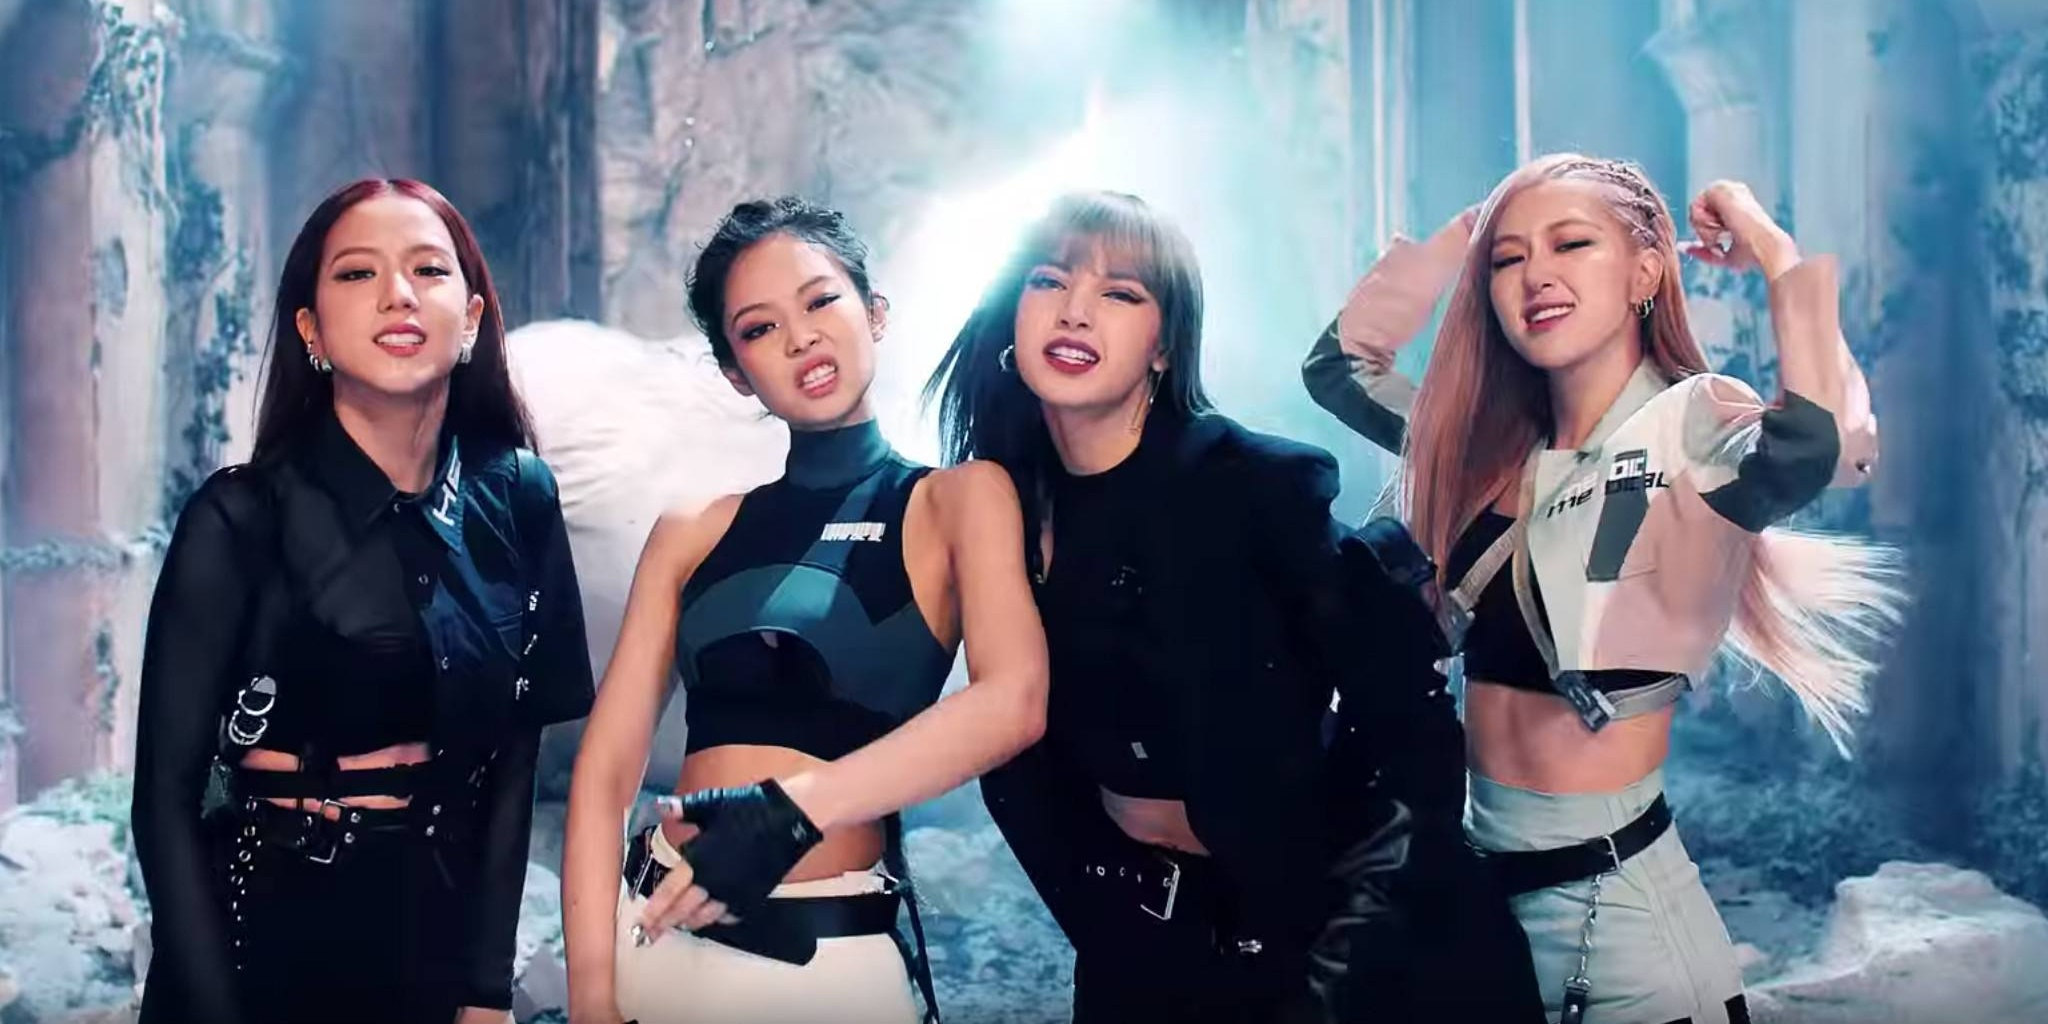 BLACKPINK breaks YouTube Premiere record with 'Kill This Love' music video